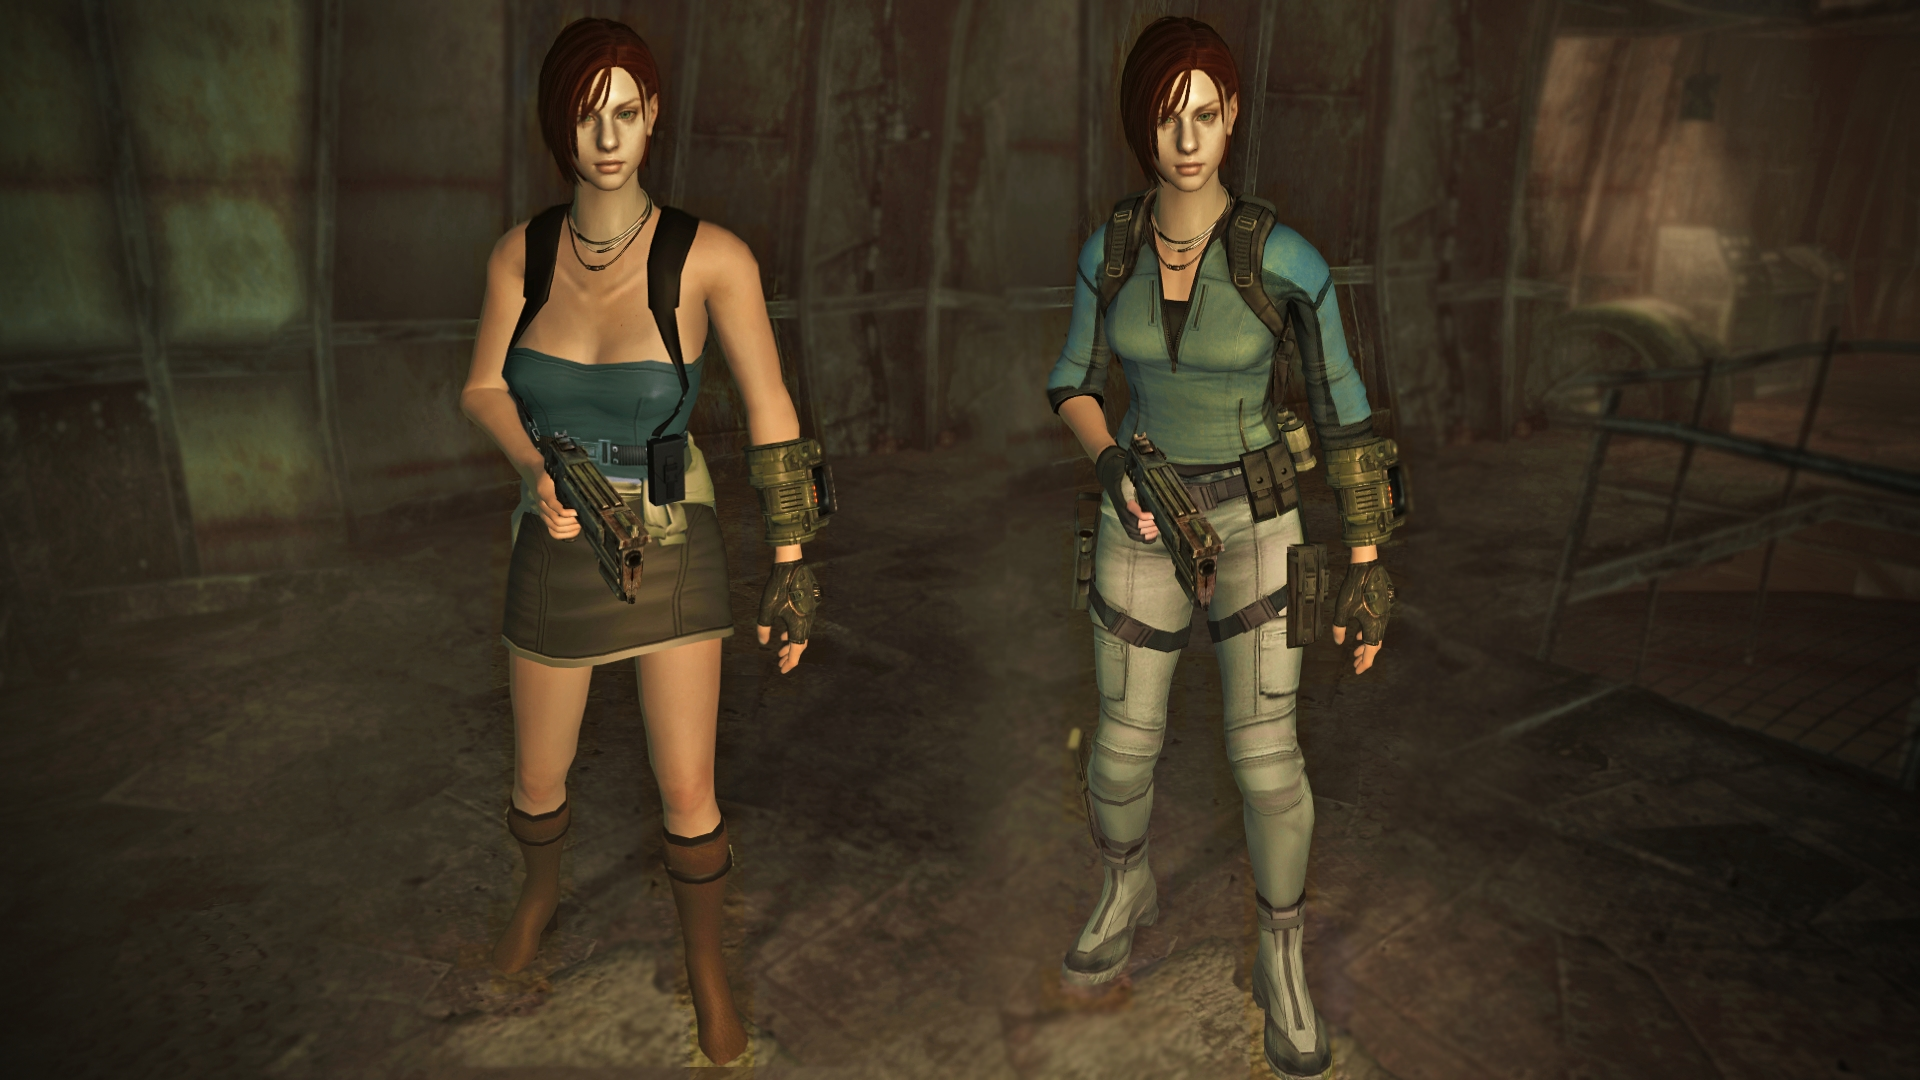 Jill Valentine Fallout 3 race & clothes